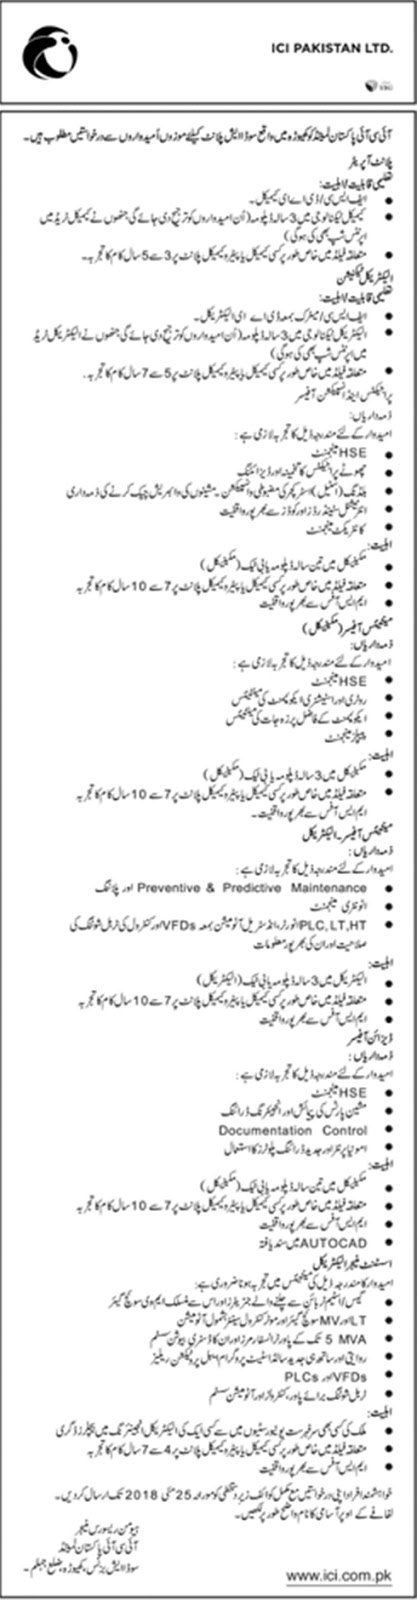 Jobs In ICI Pakistan Ltd May 2018